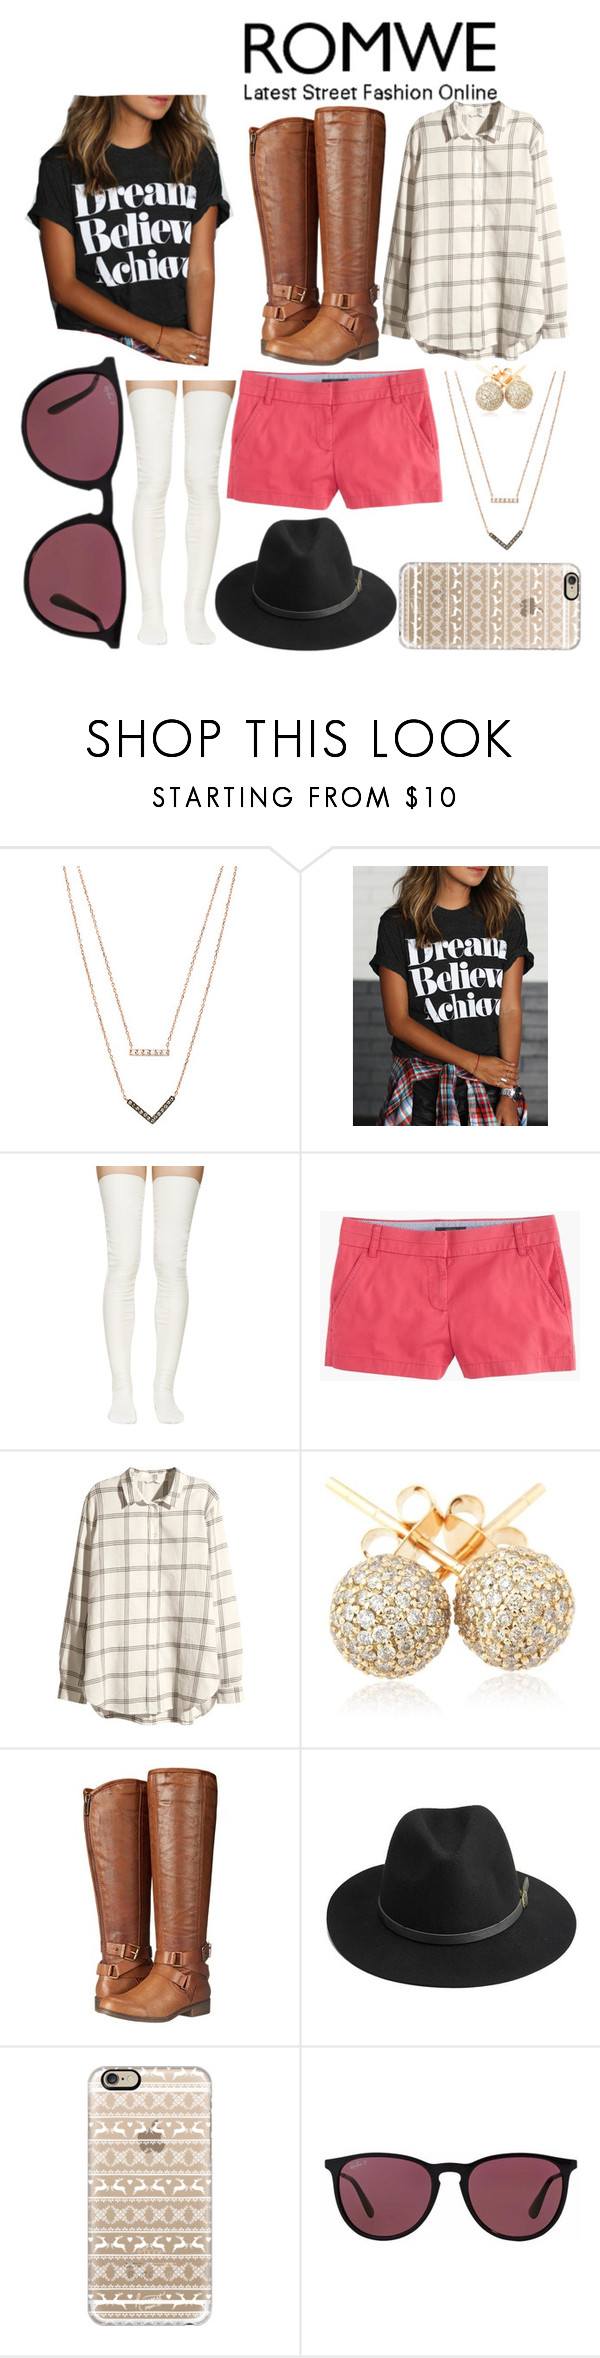 """""""ROMWE contest entry"""" by pmolly ❤ liked on Polyvore featuring Michael Kors, Sacai Luck, J.Crew, H&M, Loushelou, Madden Girl, BeckSöndergaard, Casetify and Ray-Ban"""